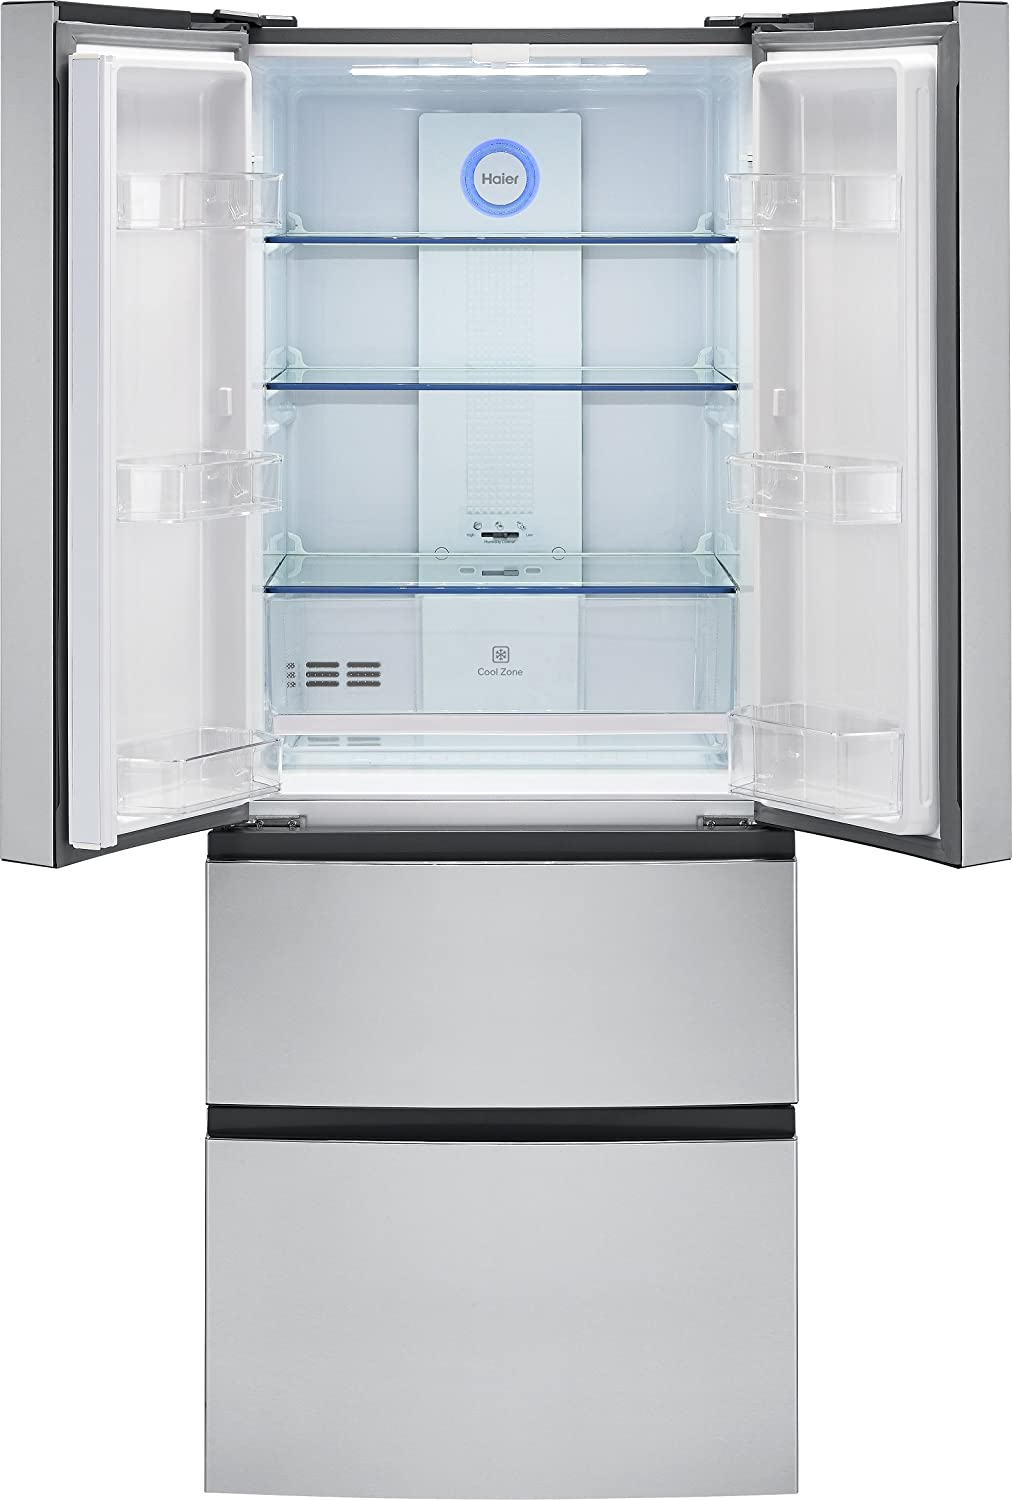 Side by side refrigerator 30 inch width - Ft French Door Refrigerator 28 Width Stainless Steel Hrf15n3ags Appliances